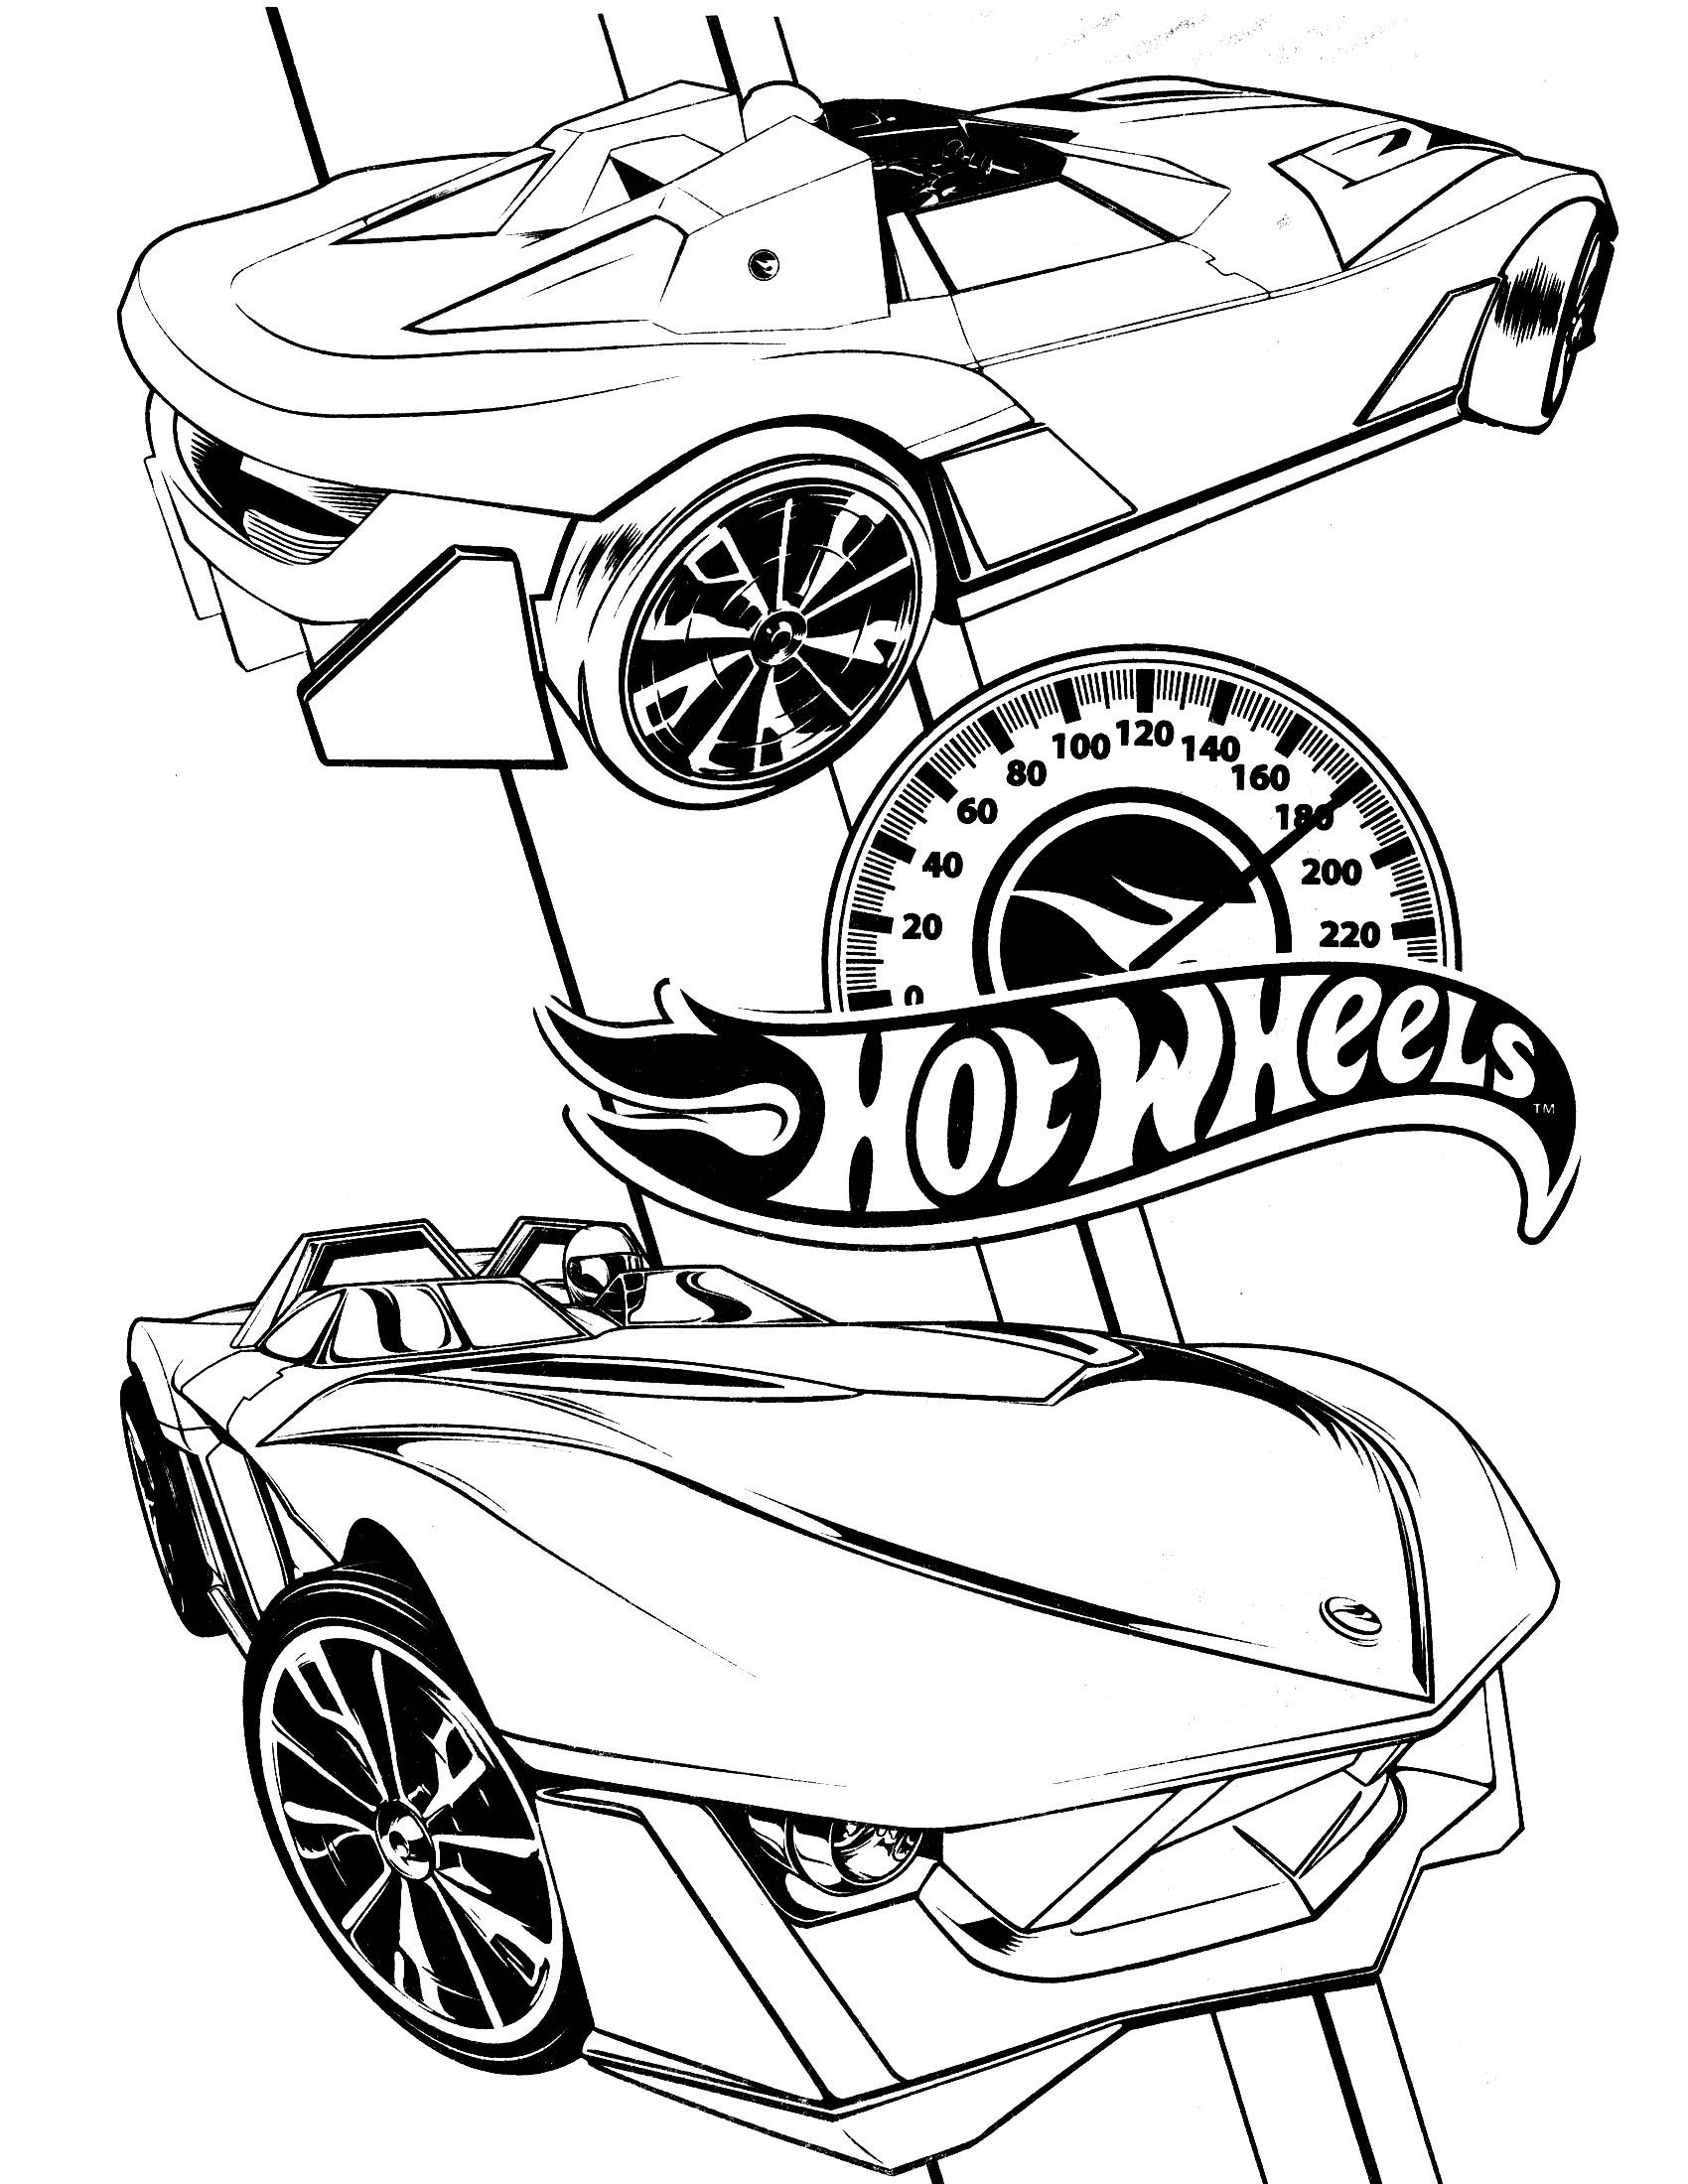 Car coloring games online free - Free Mustang Coloring Pages With Printable Car See More Hot Wheels Coloring Page